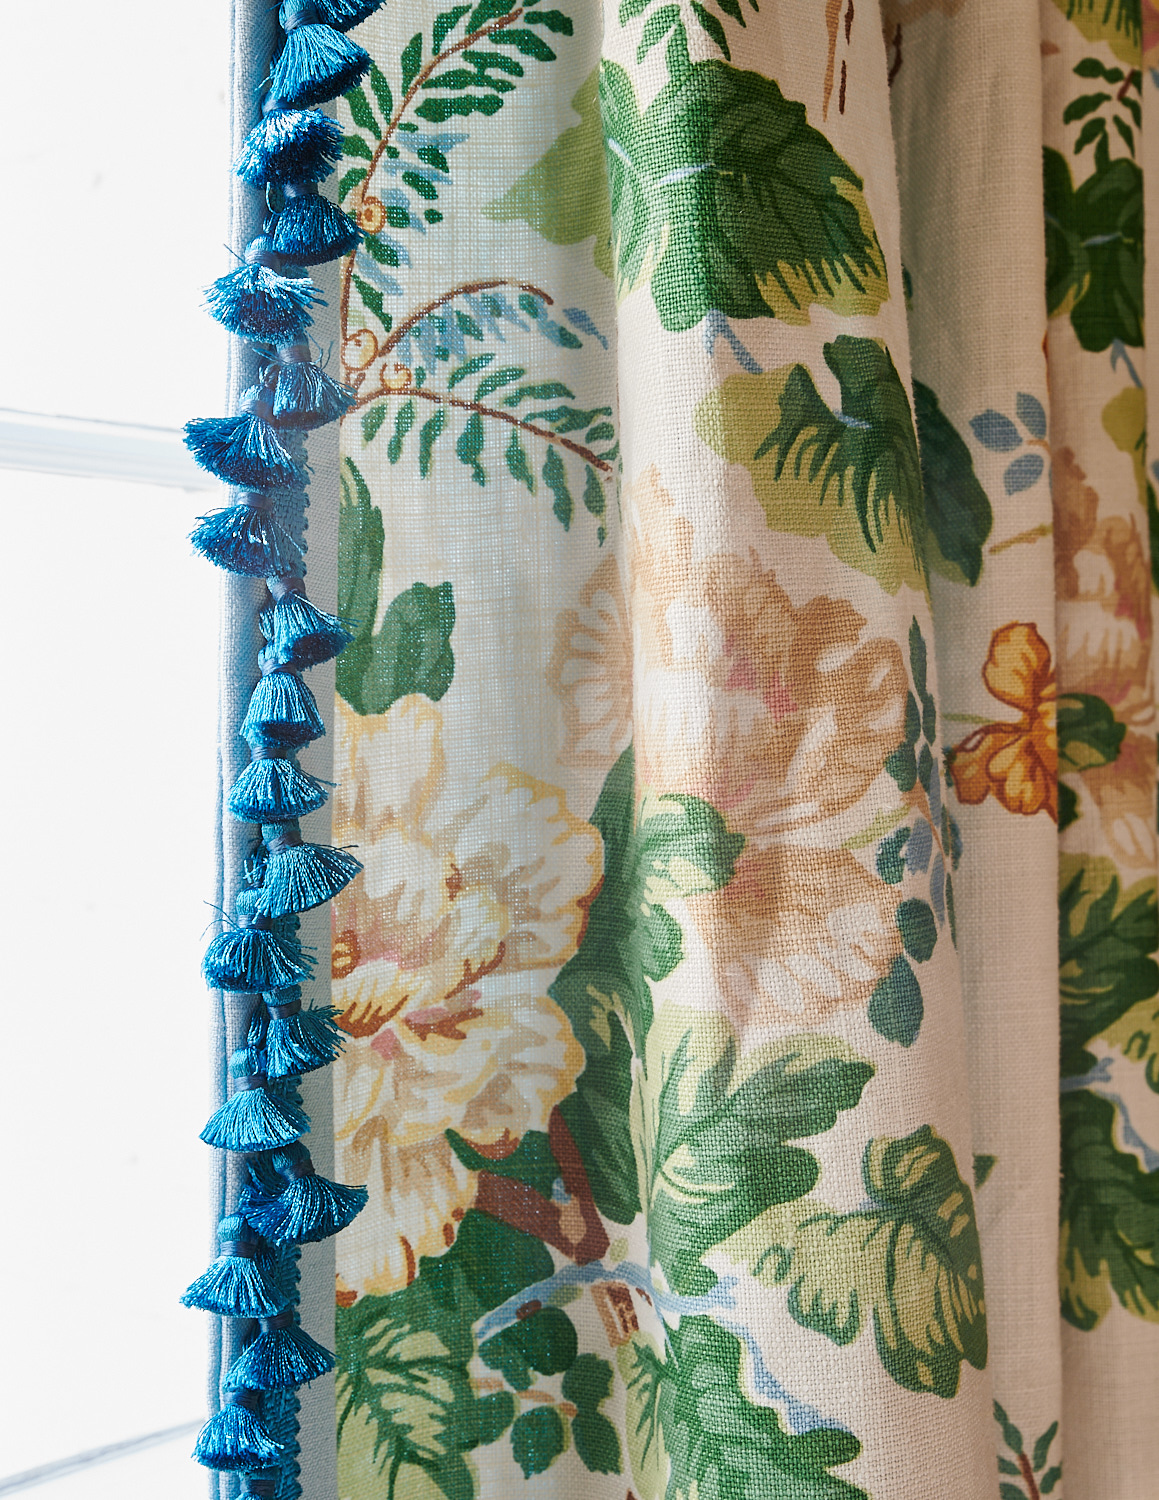 Floral drapery with blue tassels